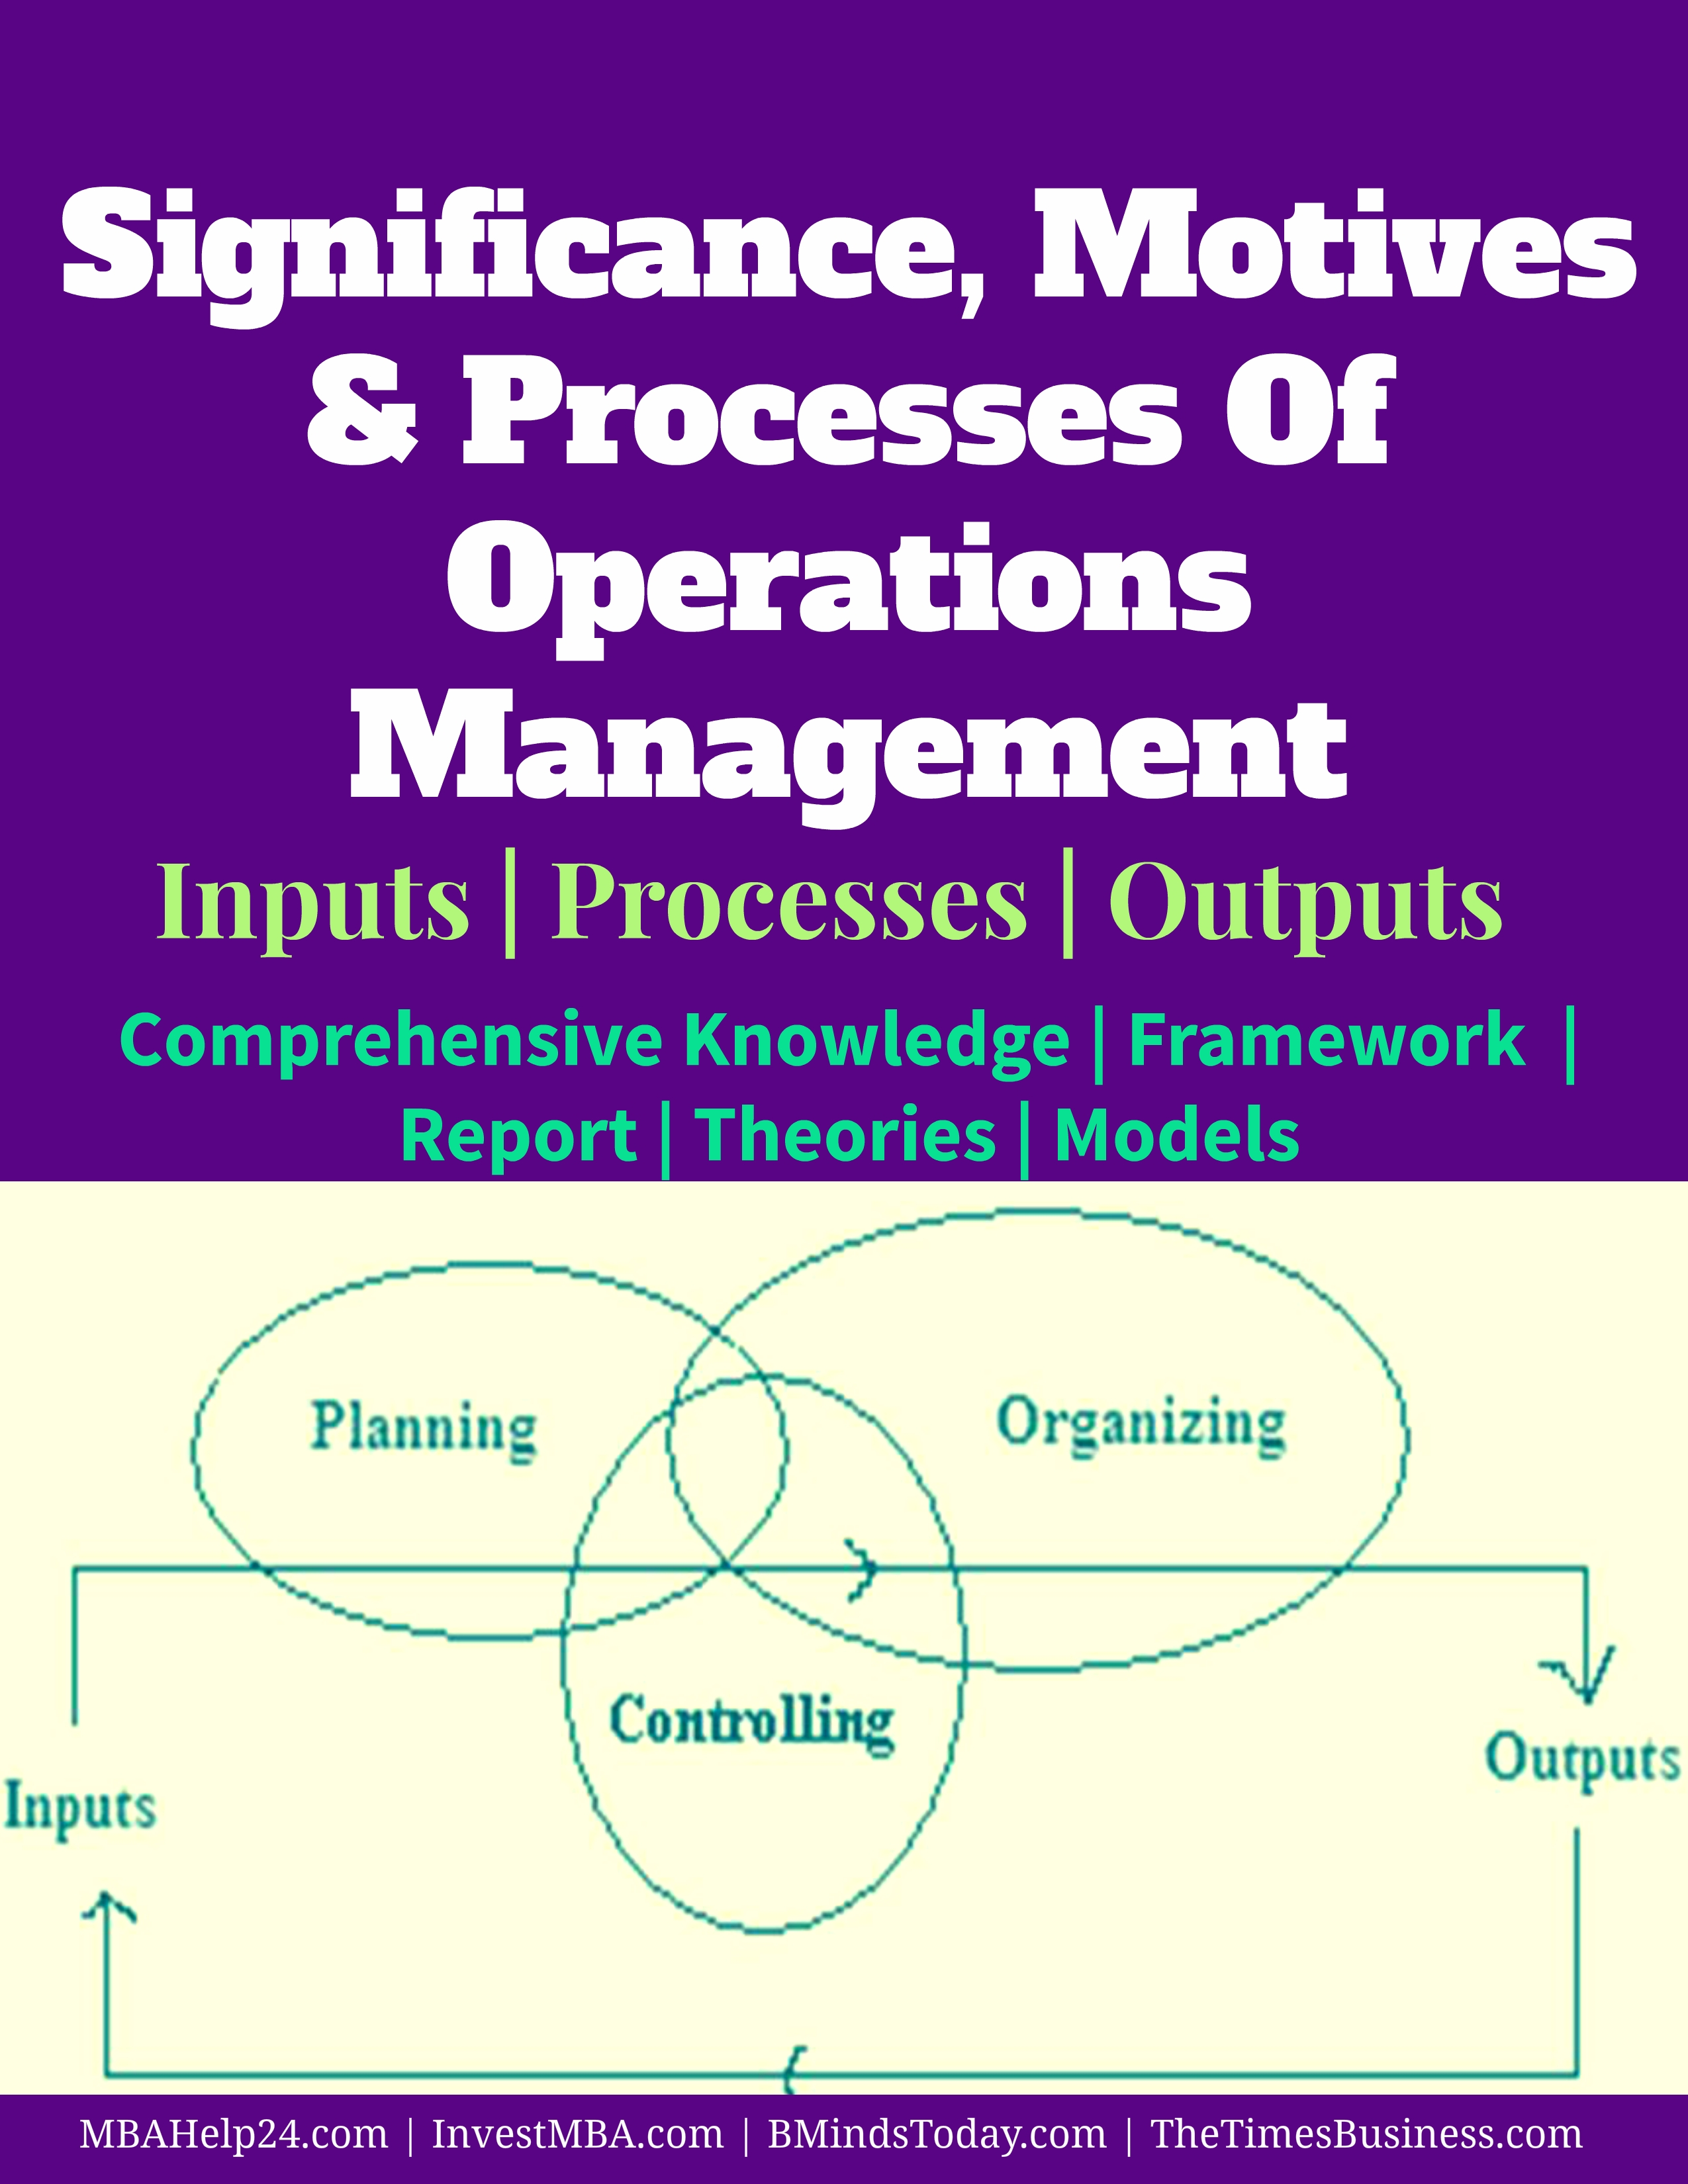 Significance, motives and processes of Operations Management operations management Processes Of Operations Management | Significance | Motives | Inputs | Outputs Significance motives and processes of Operations Management